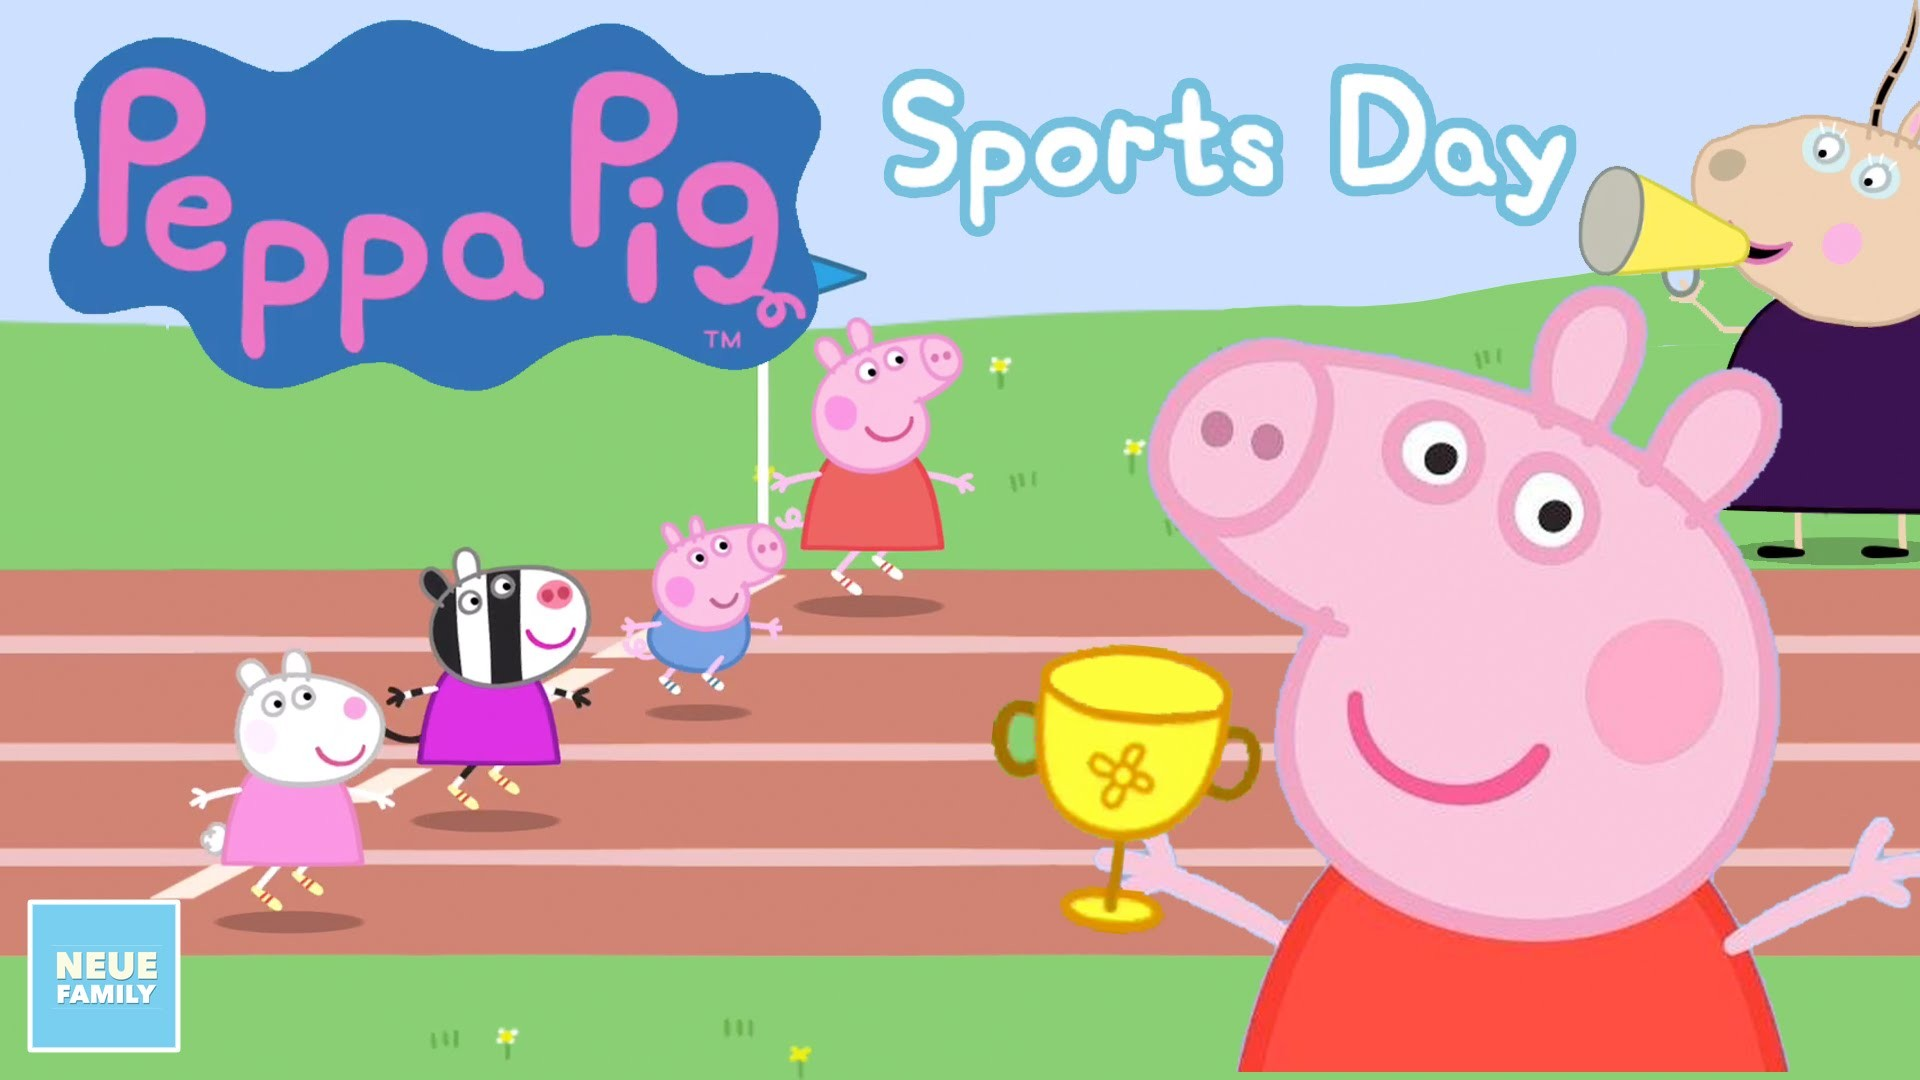 Peppa Pig Sports Day: Activity App for Kids